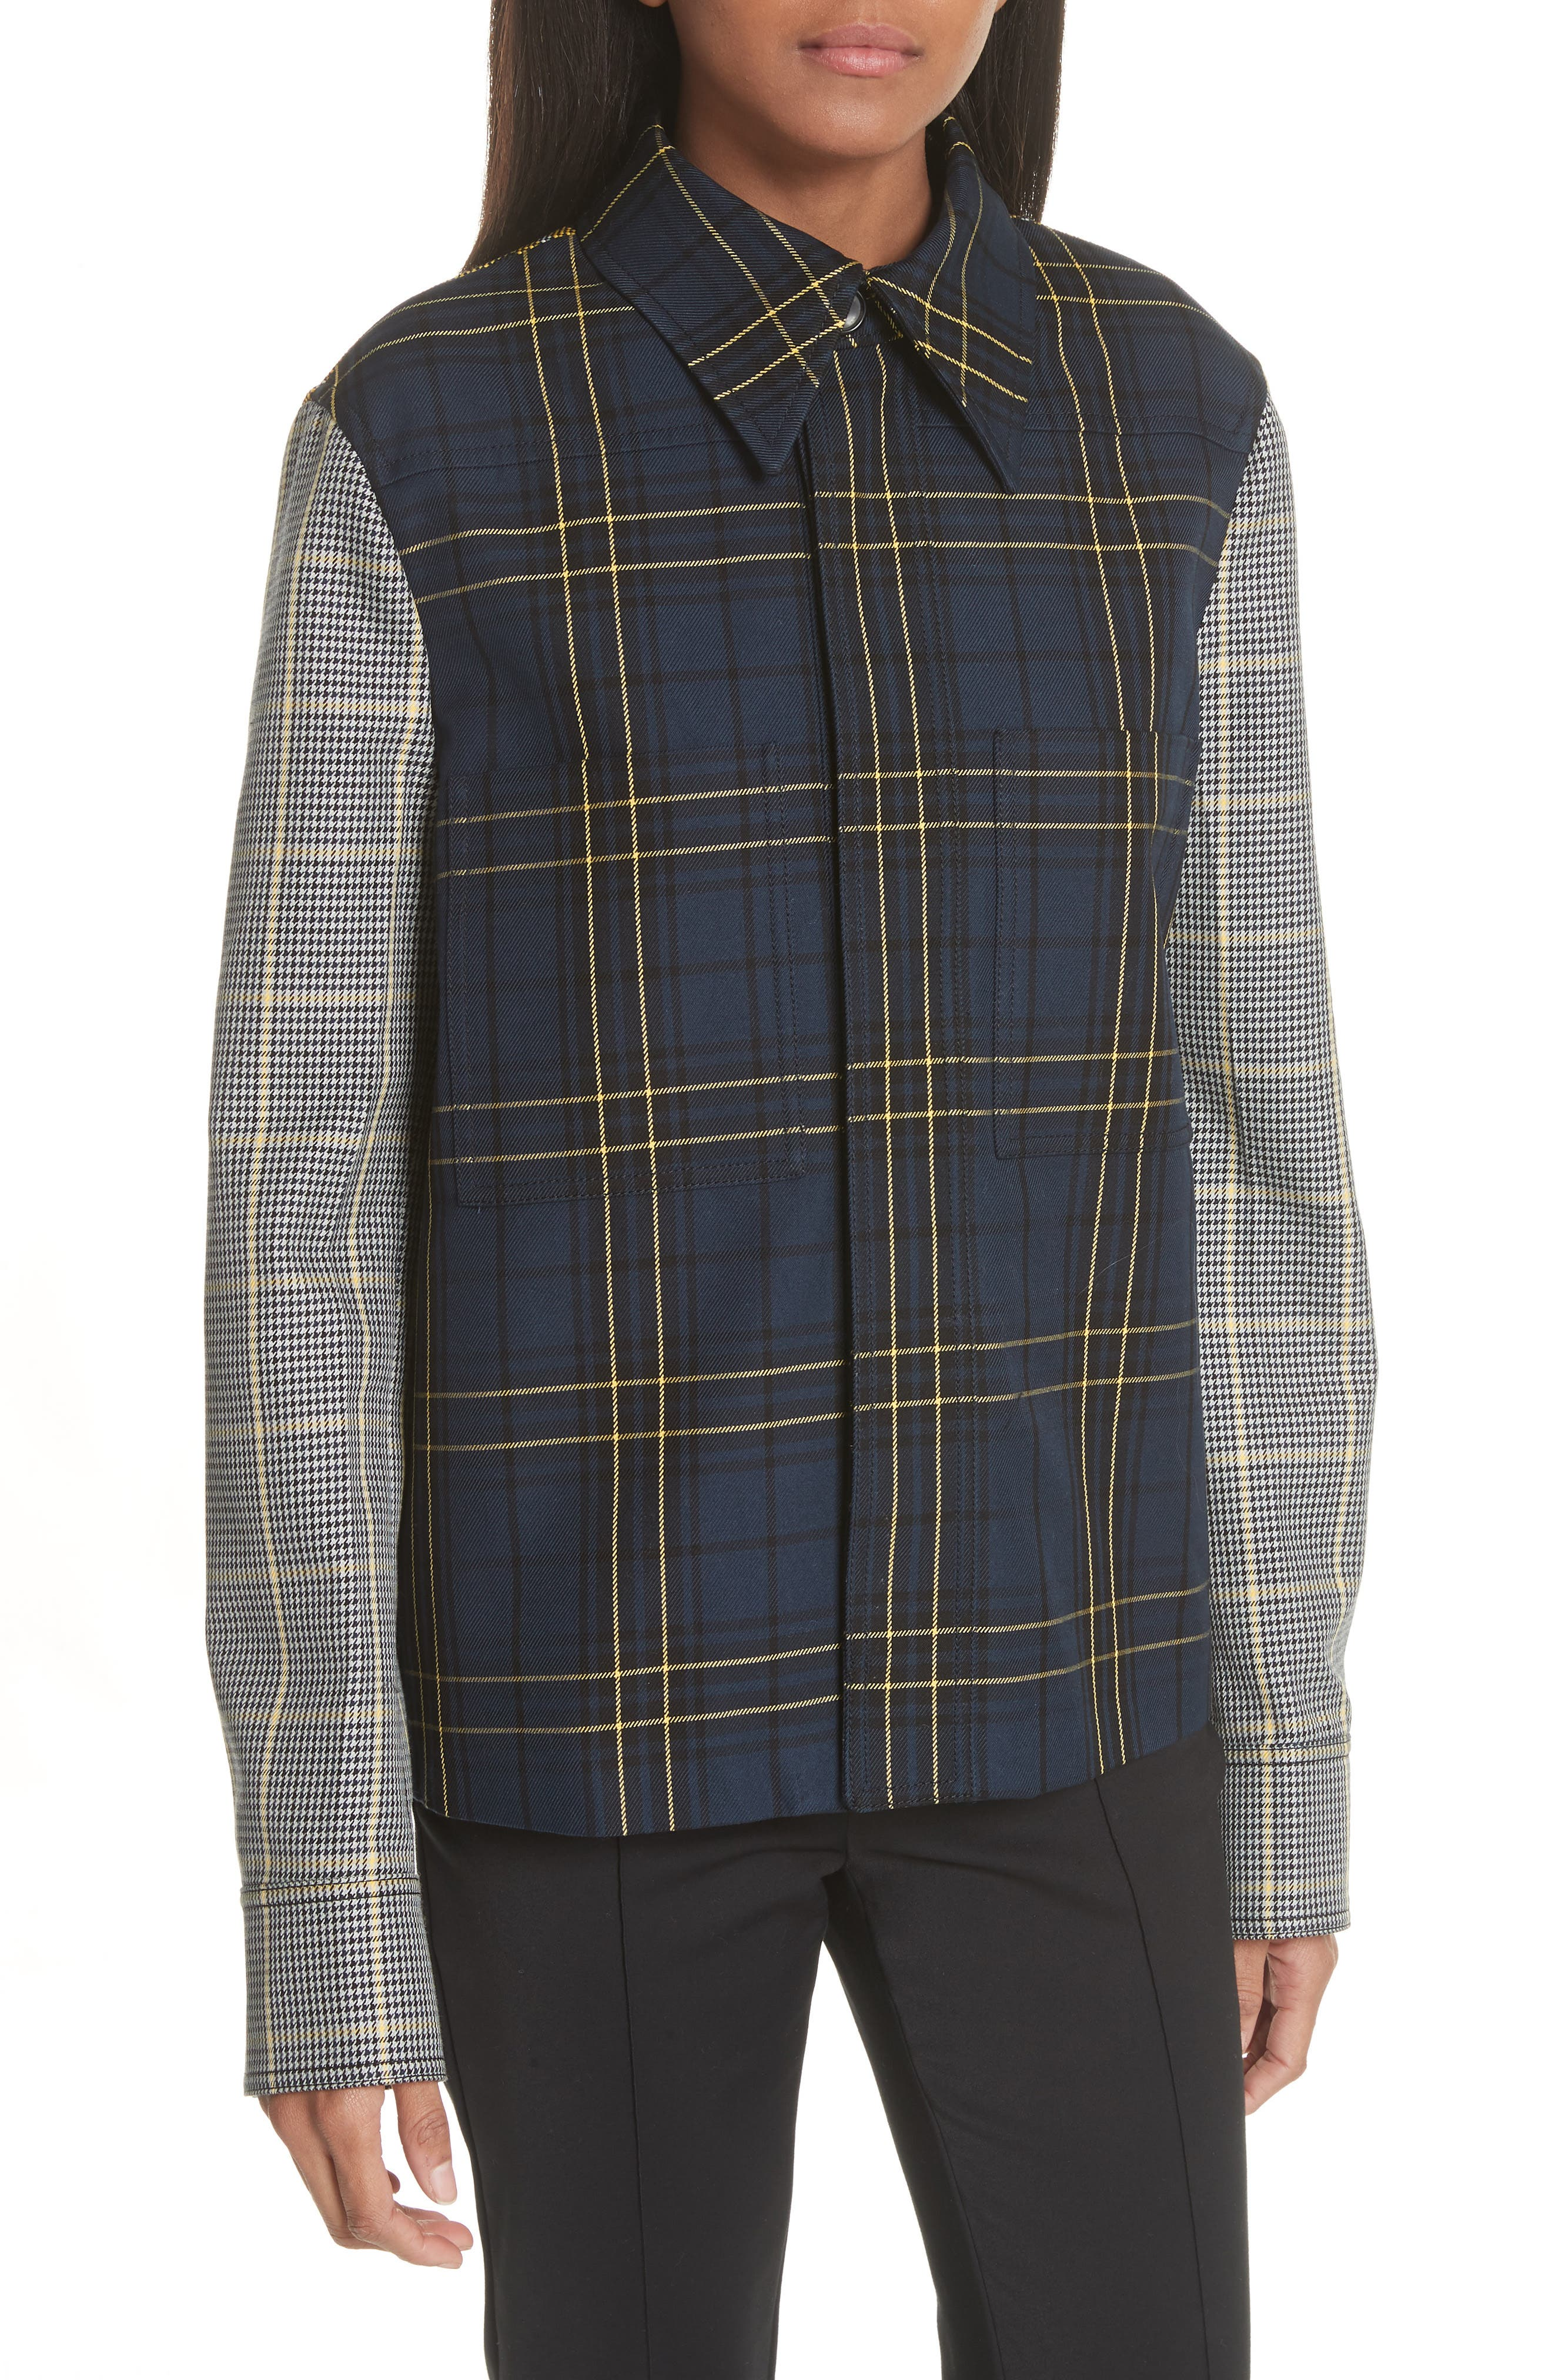 Coen Check Patchwork Jacket,                         Main,                         color,